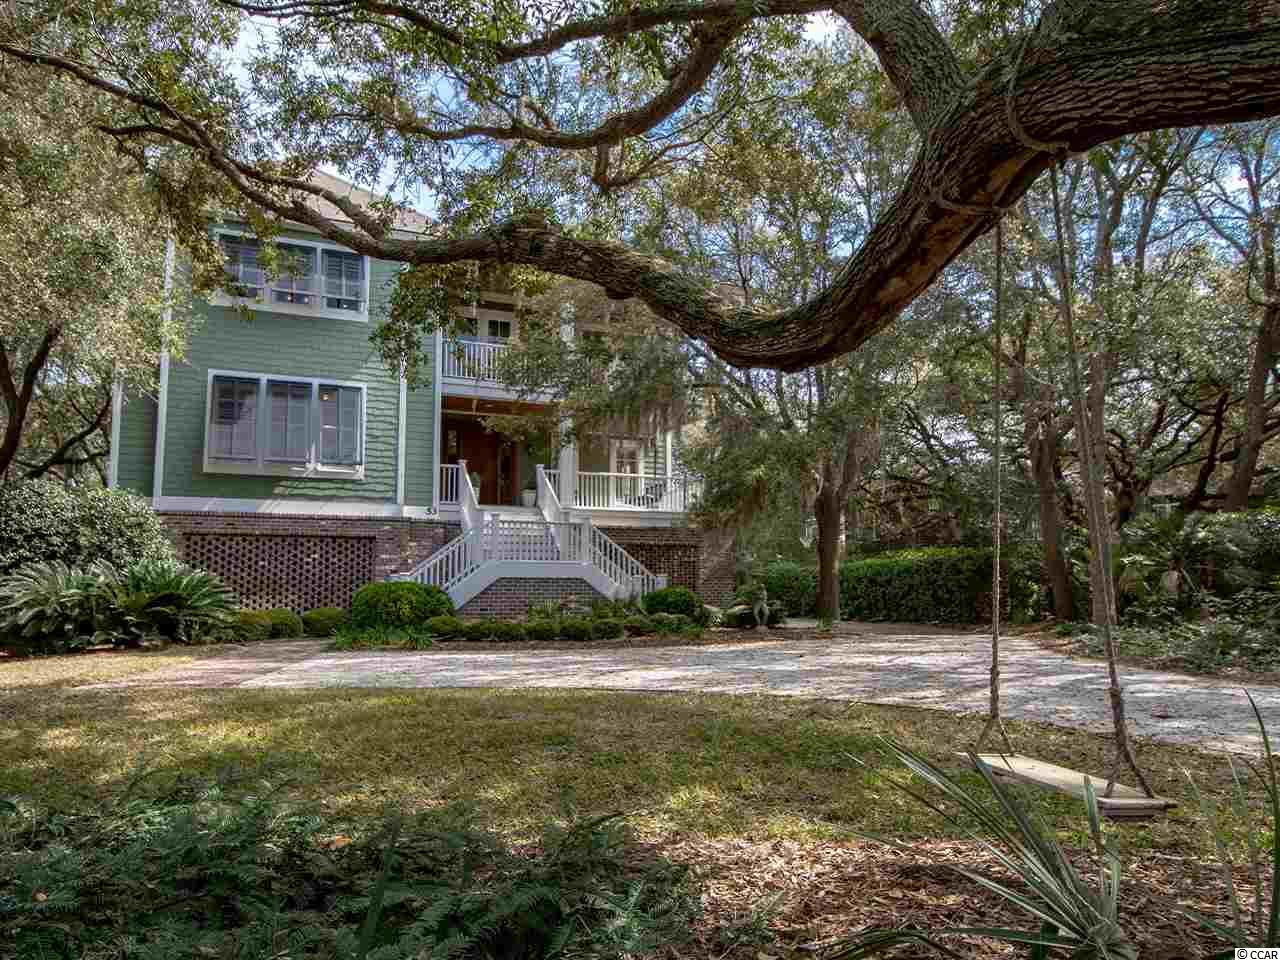 """Created to complement your coastal lifestyle, this three-story wonder in Debordieu Colony beckons. From the upper level providing a serene space for reading, exercising, crafts and/or birdwatching as well as access to an observation deck with an extraordinary ocean view to the first floor with an awesome bunk room for the kids...this home exudes spaciousness and invites you to enjoy all that makes Debordieu so special. SECOND FLOOR/MAIN: A vaulted and beamed ceiling with a Key West style fan anchor the Great Room which opens to the Dining Room and Kitchen where family and friends can reconnect each day.  A double-sided GE Monogram refrigerator/freezer, 2 Bosch dishwashers, Thermador gas range,  oven, microwave and warming drawer provide for entertaining """"at it's best.""""  The large Master Suite provides an ideal retreat with walk-in closet, separate vanities, a garden tub flanked by built-in cabinetry as well as tiled shower and water closet.  FIRST FLOOR:  A large den anchors this floor which has four ensuite bedrooms, to include a bunk room. A laundry room with an additional dryer is just one of the many """"extras.""""   GARAGE LEVEL: A separate exercise room as well as enclosed storage completes this space which allows not only for parking but also for golf carts, boats, and sundry items for outdoor and beach activities. The elevator provides access to the first and second floors. Grand vistas of the live oaks and private lagoon are afforded from every level.  Bahama Shutters provide privacy as you enjoy your """"outside"""" world on the many porches which are complete with a mosquito misting system are also features of this spectacular home. Debordieu Colony - a private 2700 acre community offering miles of beach, championship golf, professional tennis and fitness center, two swimming pools with gazebo bar, onsite nature preserve, bike paths and walking trails as well as fine or casual dining at the Club House and/or Beach Club. A community boat landing provides access to No"""